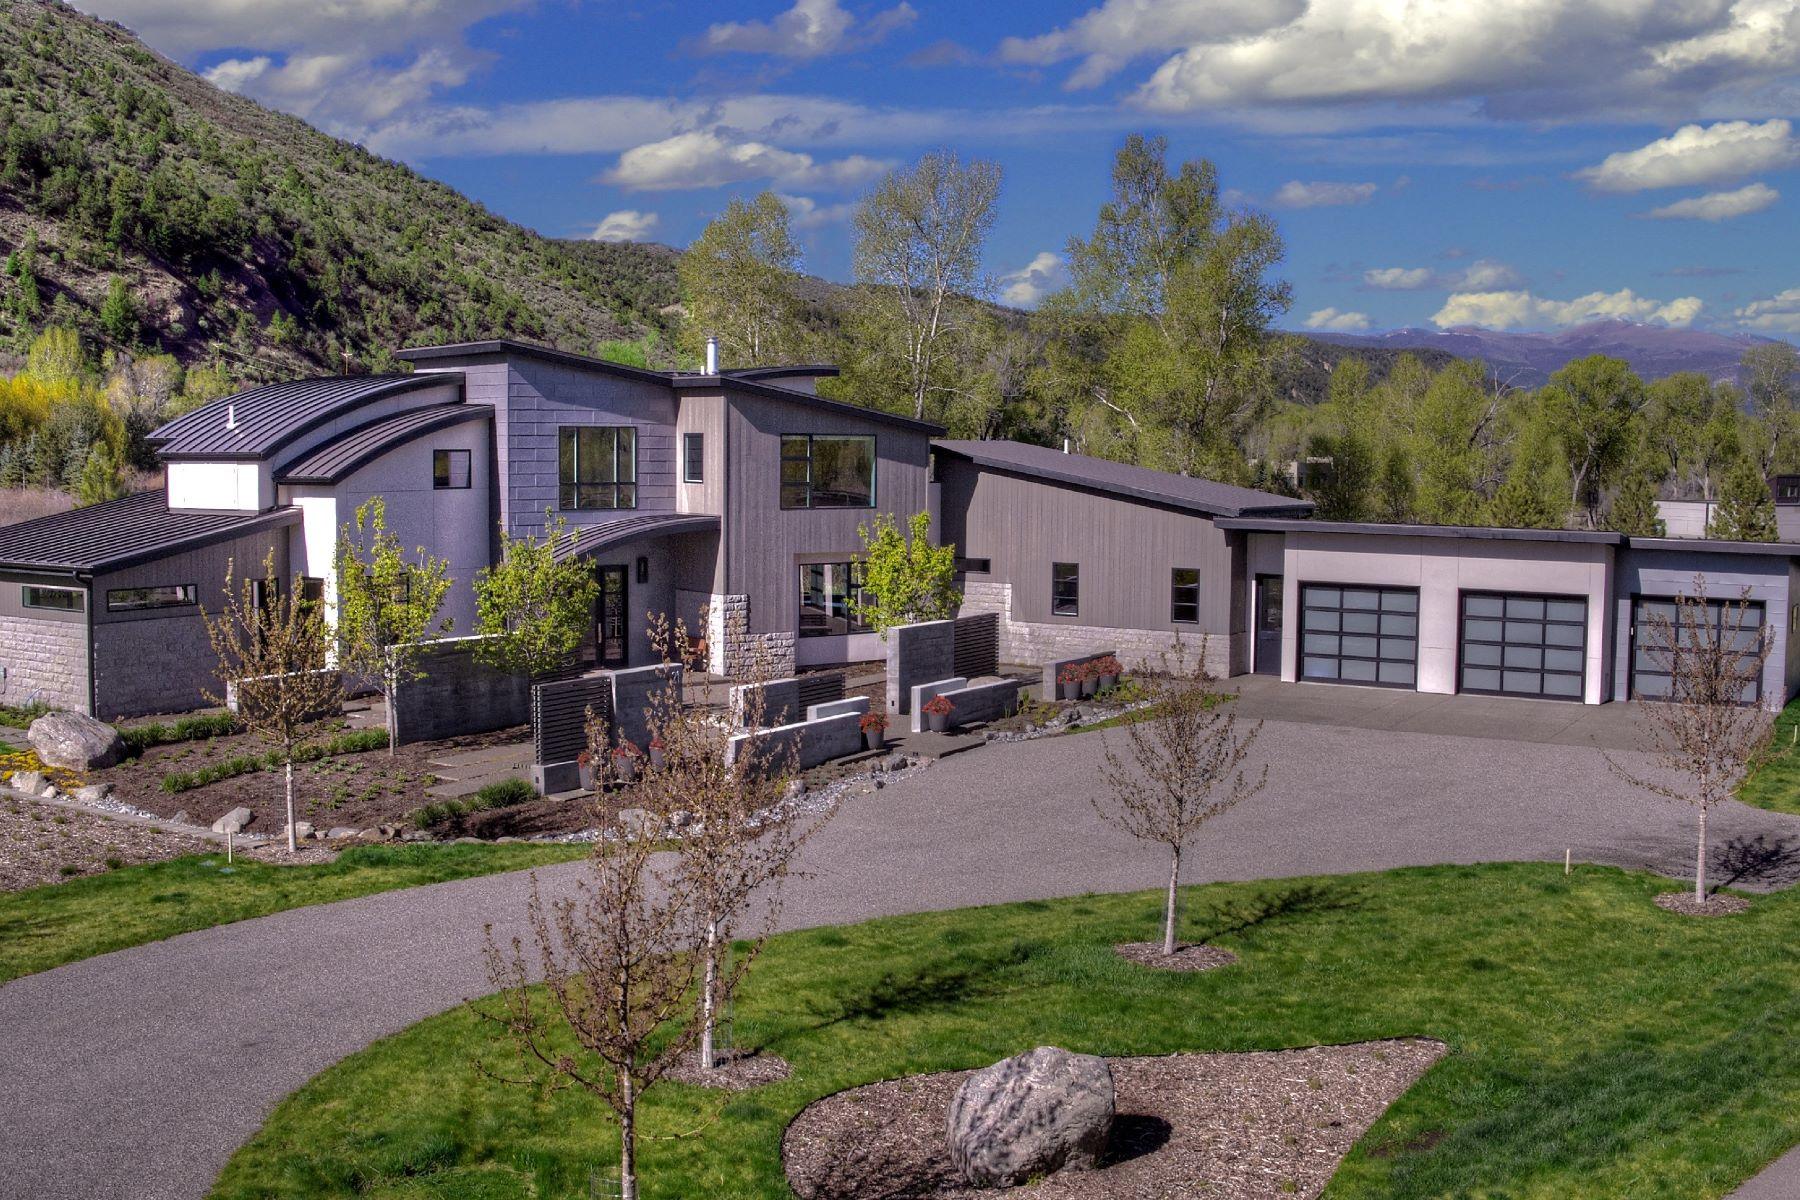 Single Family Homes for Sale at Contemporary Riverfront Gem 21 St Finnbar Farm Road Carbondale, Colorado 81623 United States